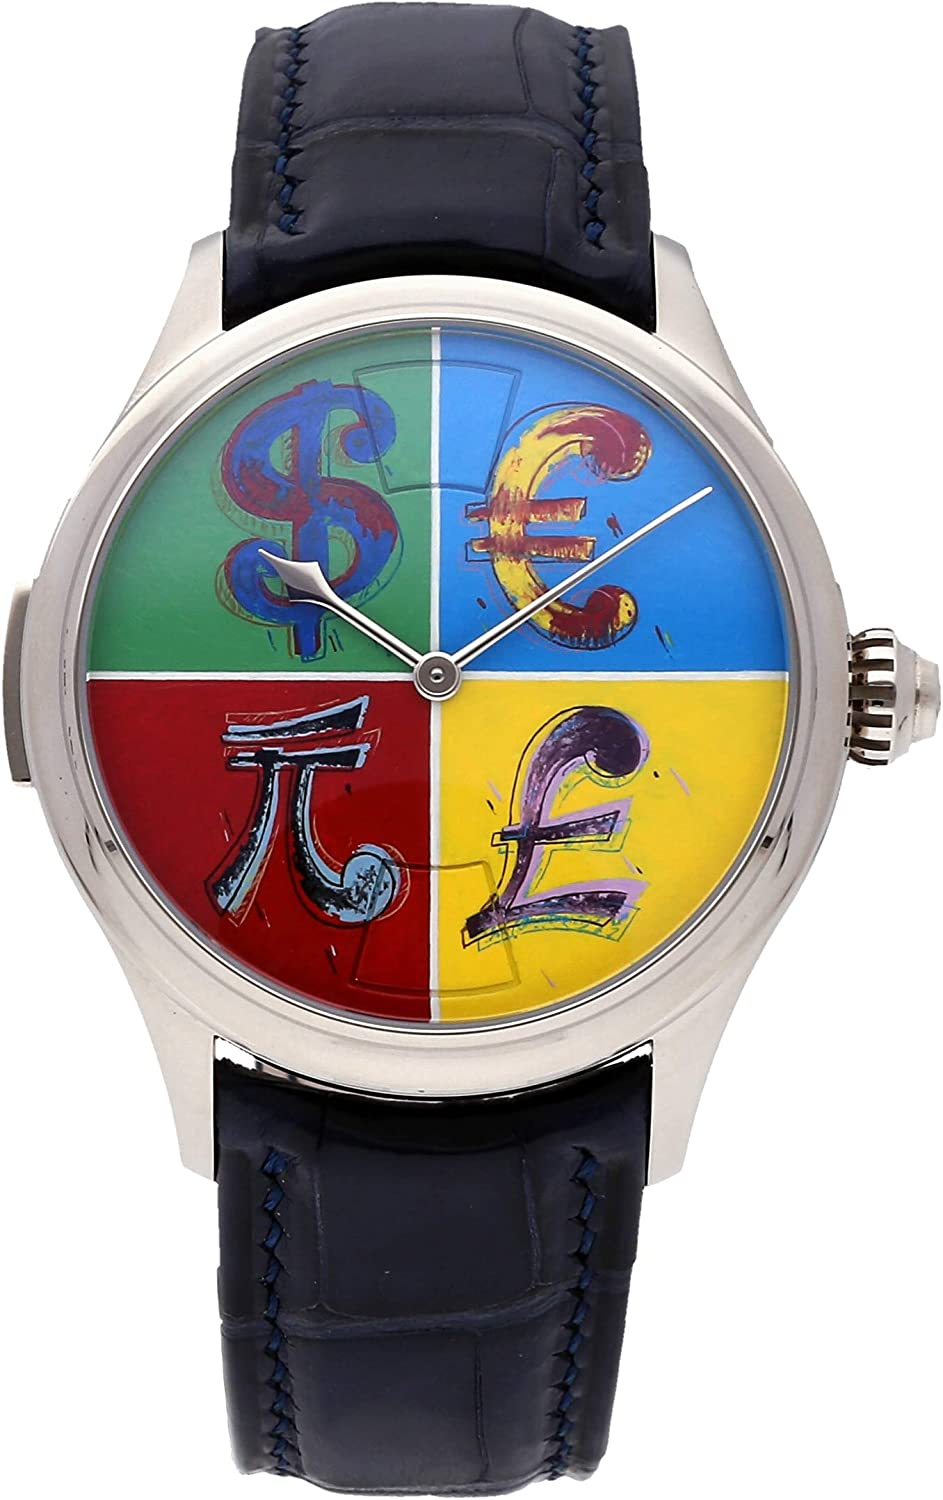 Maîtres du Temps Chapter Three Mechanical (Hand-Winding) Multi-Colored Dial Mens Watch C3R.00.00.800.99-C5 (Certified Pre-Owned)